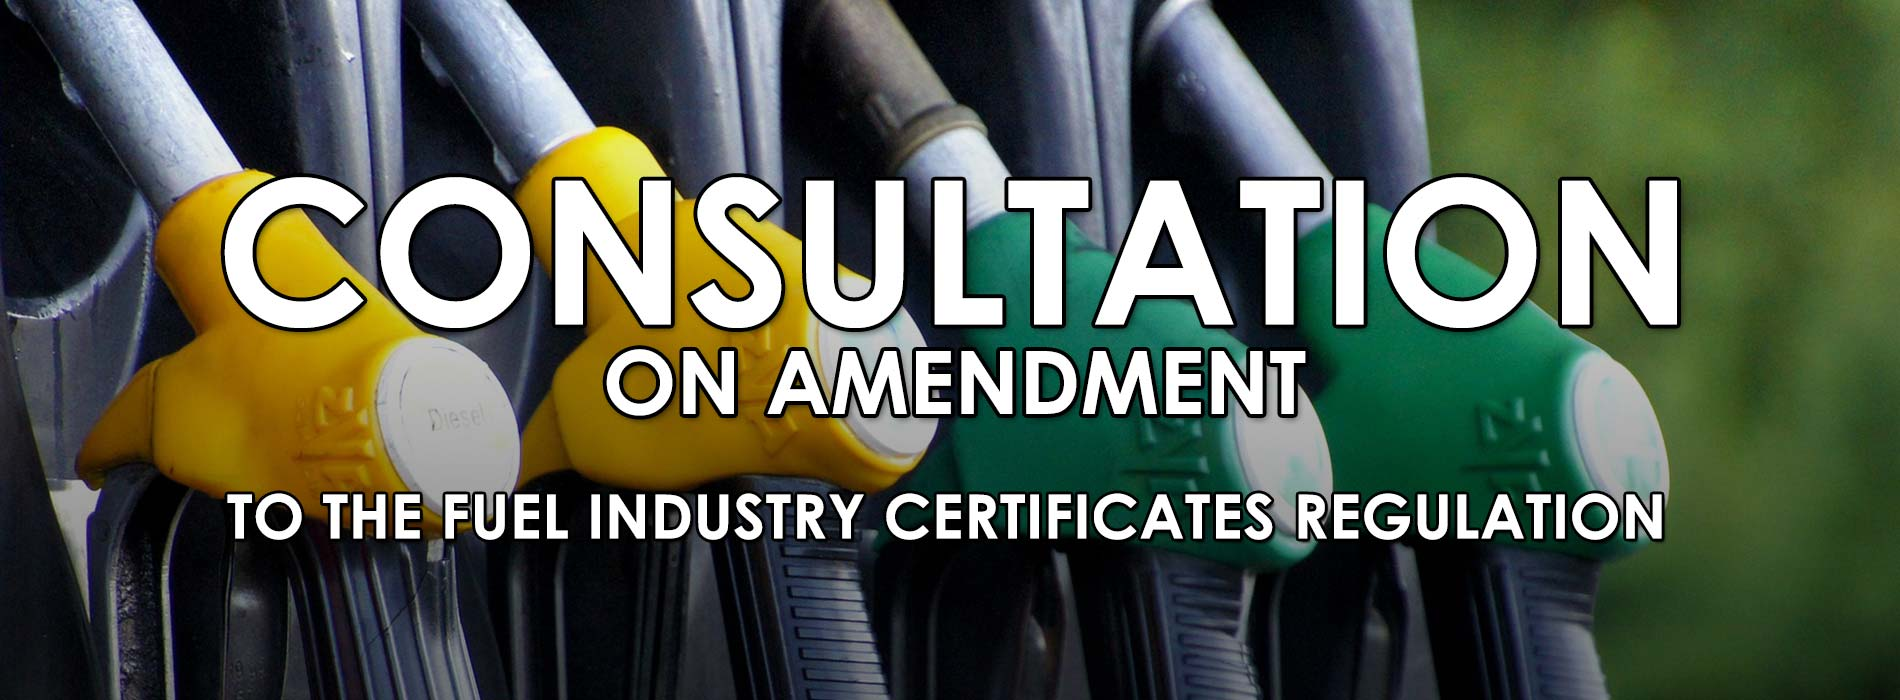 Consultation on Amendment to the Fuel Industry Certificates Regulation